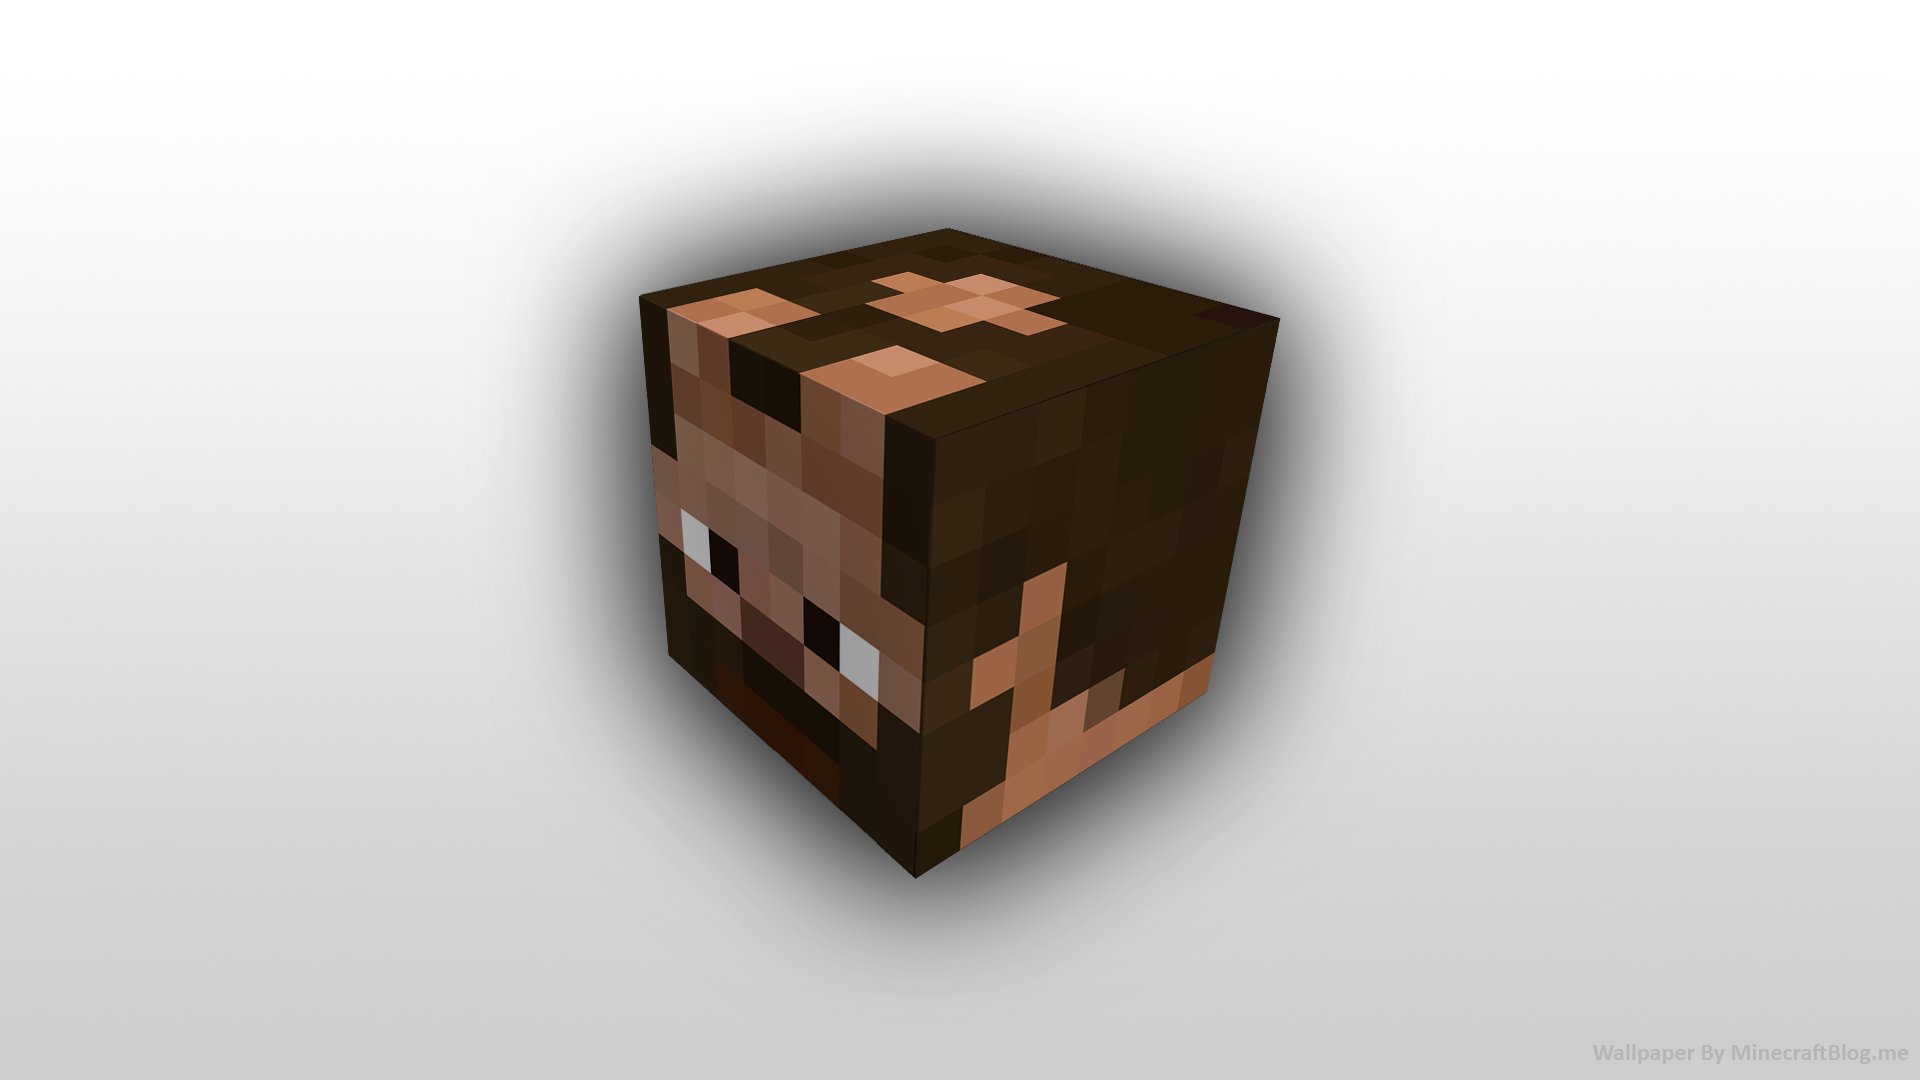 Minecraft Block Head My Skin desktop wallpaper by fpsxgames on 1920x1080